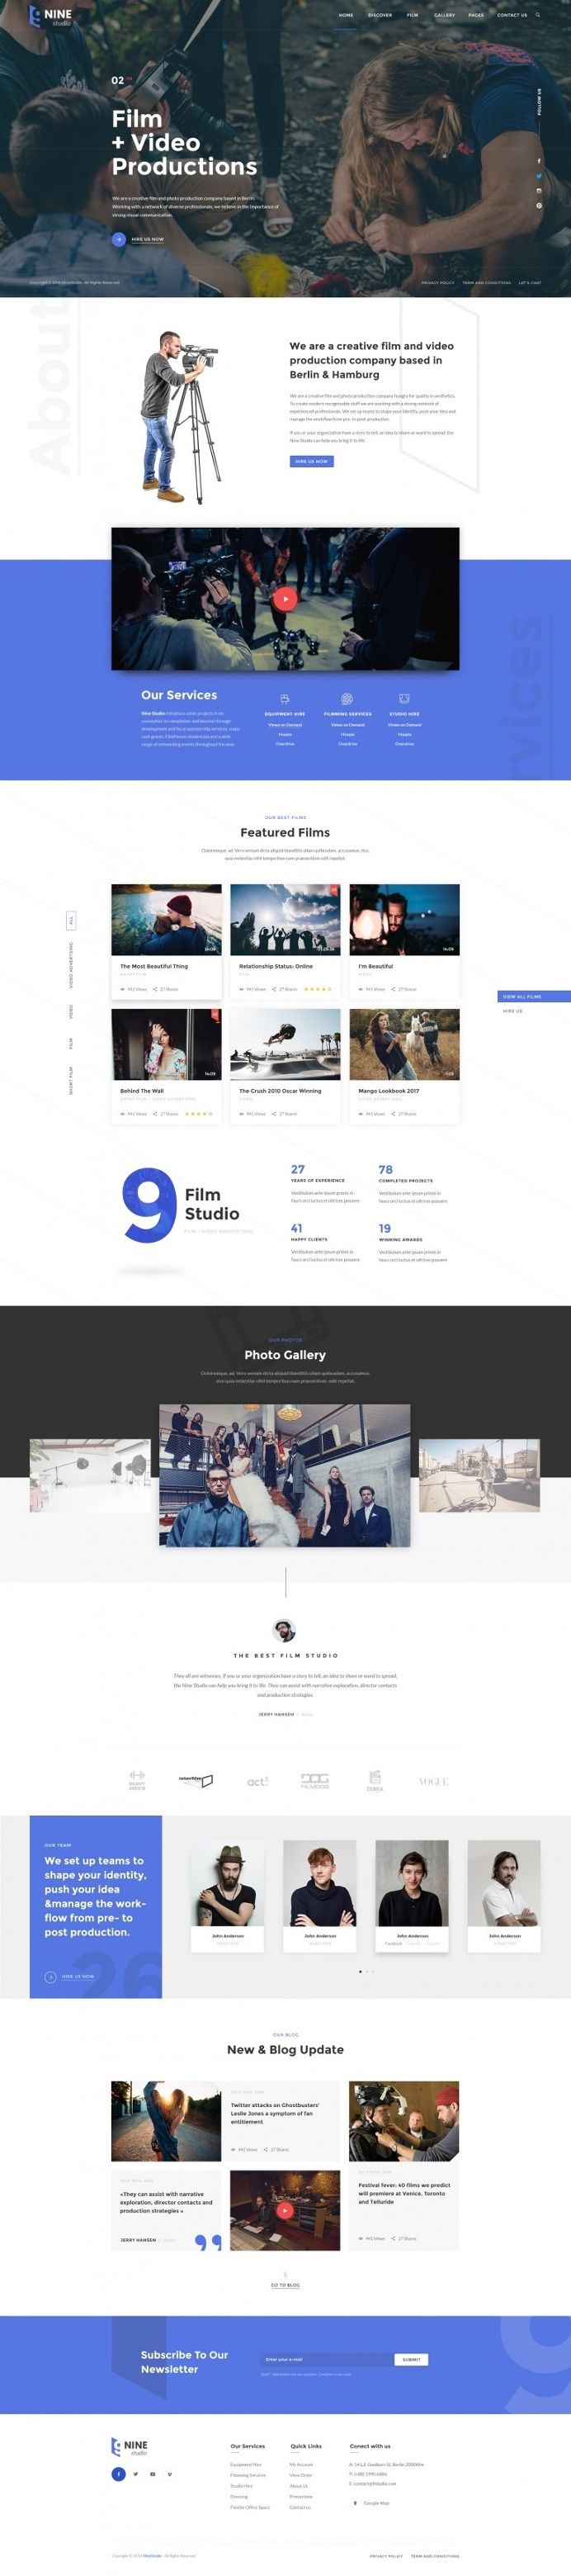 362 best Web Design images on Pinterest | Design websites, Web ...